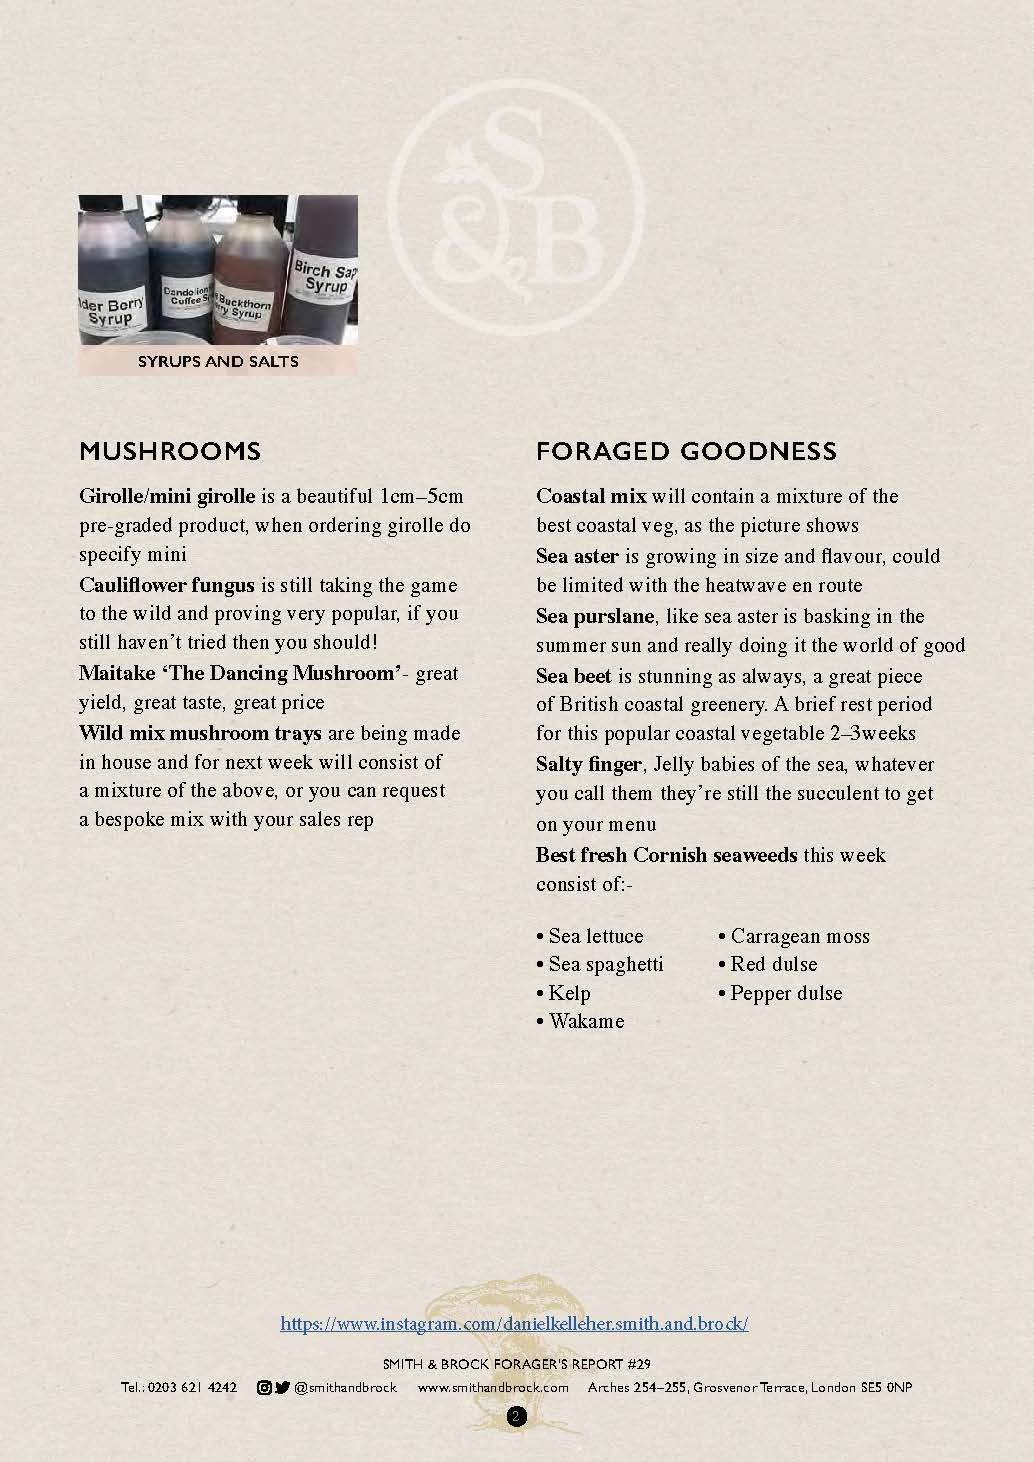 Smith&Brock Foraged Products Report 21 Oct 2019 29 2